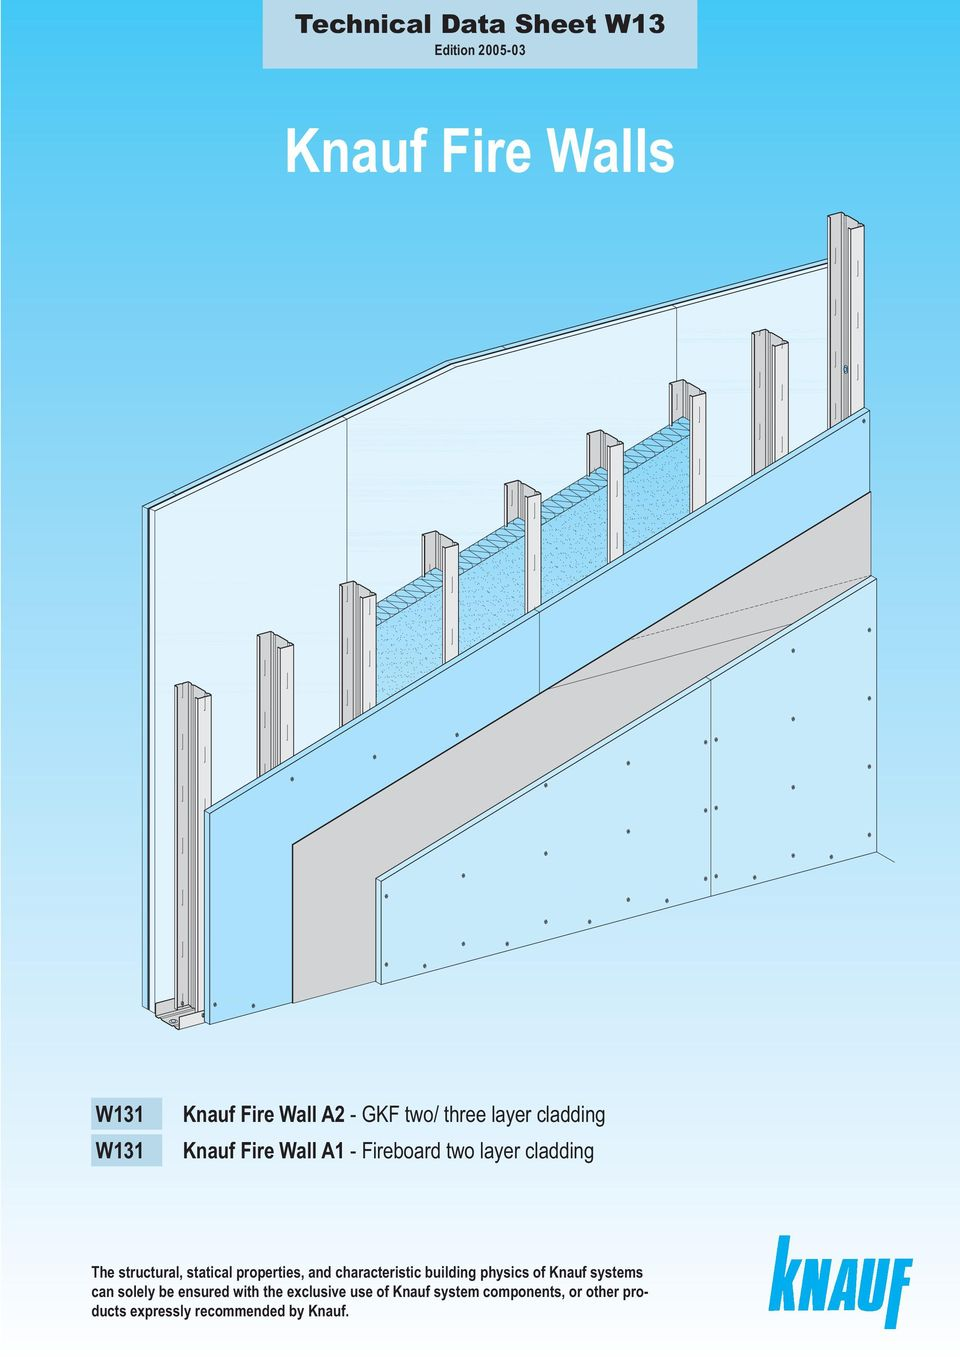 statical properties, and characteristic building physics of Knauf systems can solely be